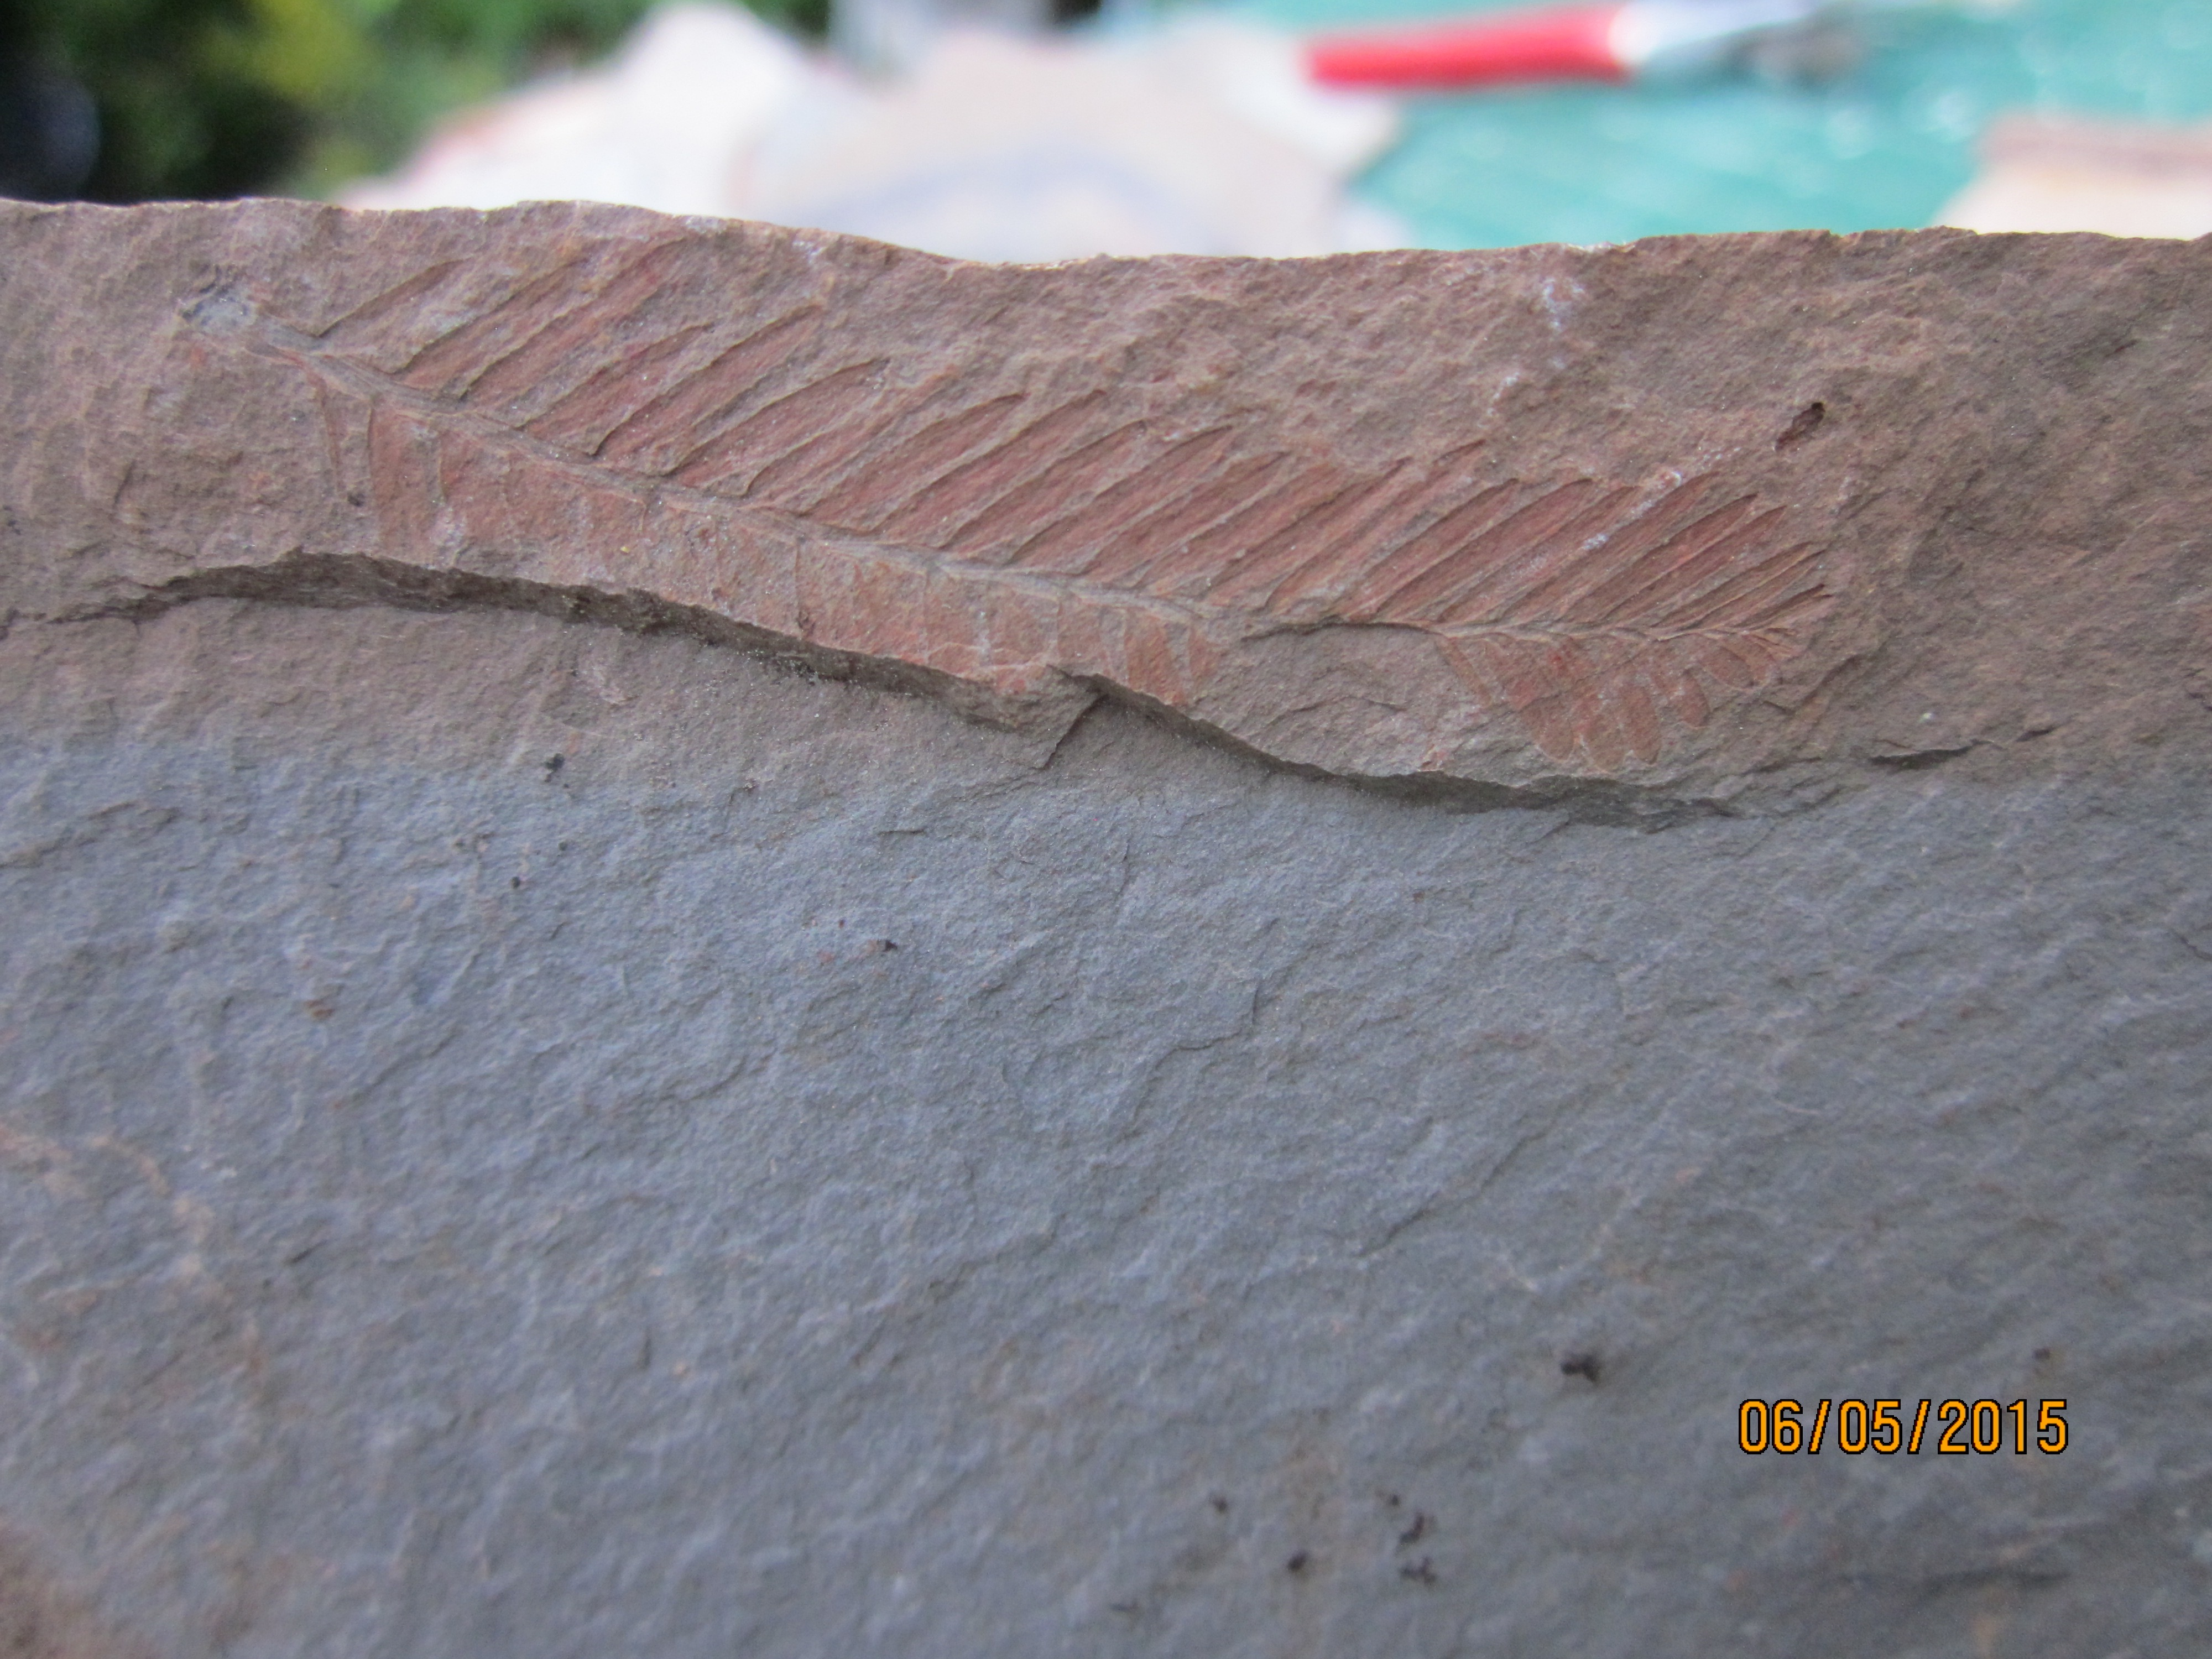 Hoping someone can identify these Princeton fossils    Gerda